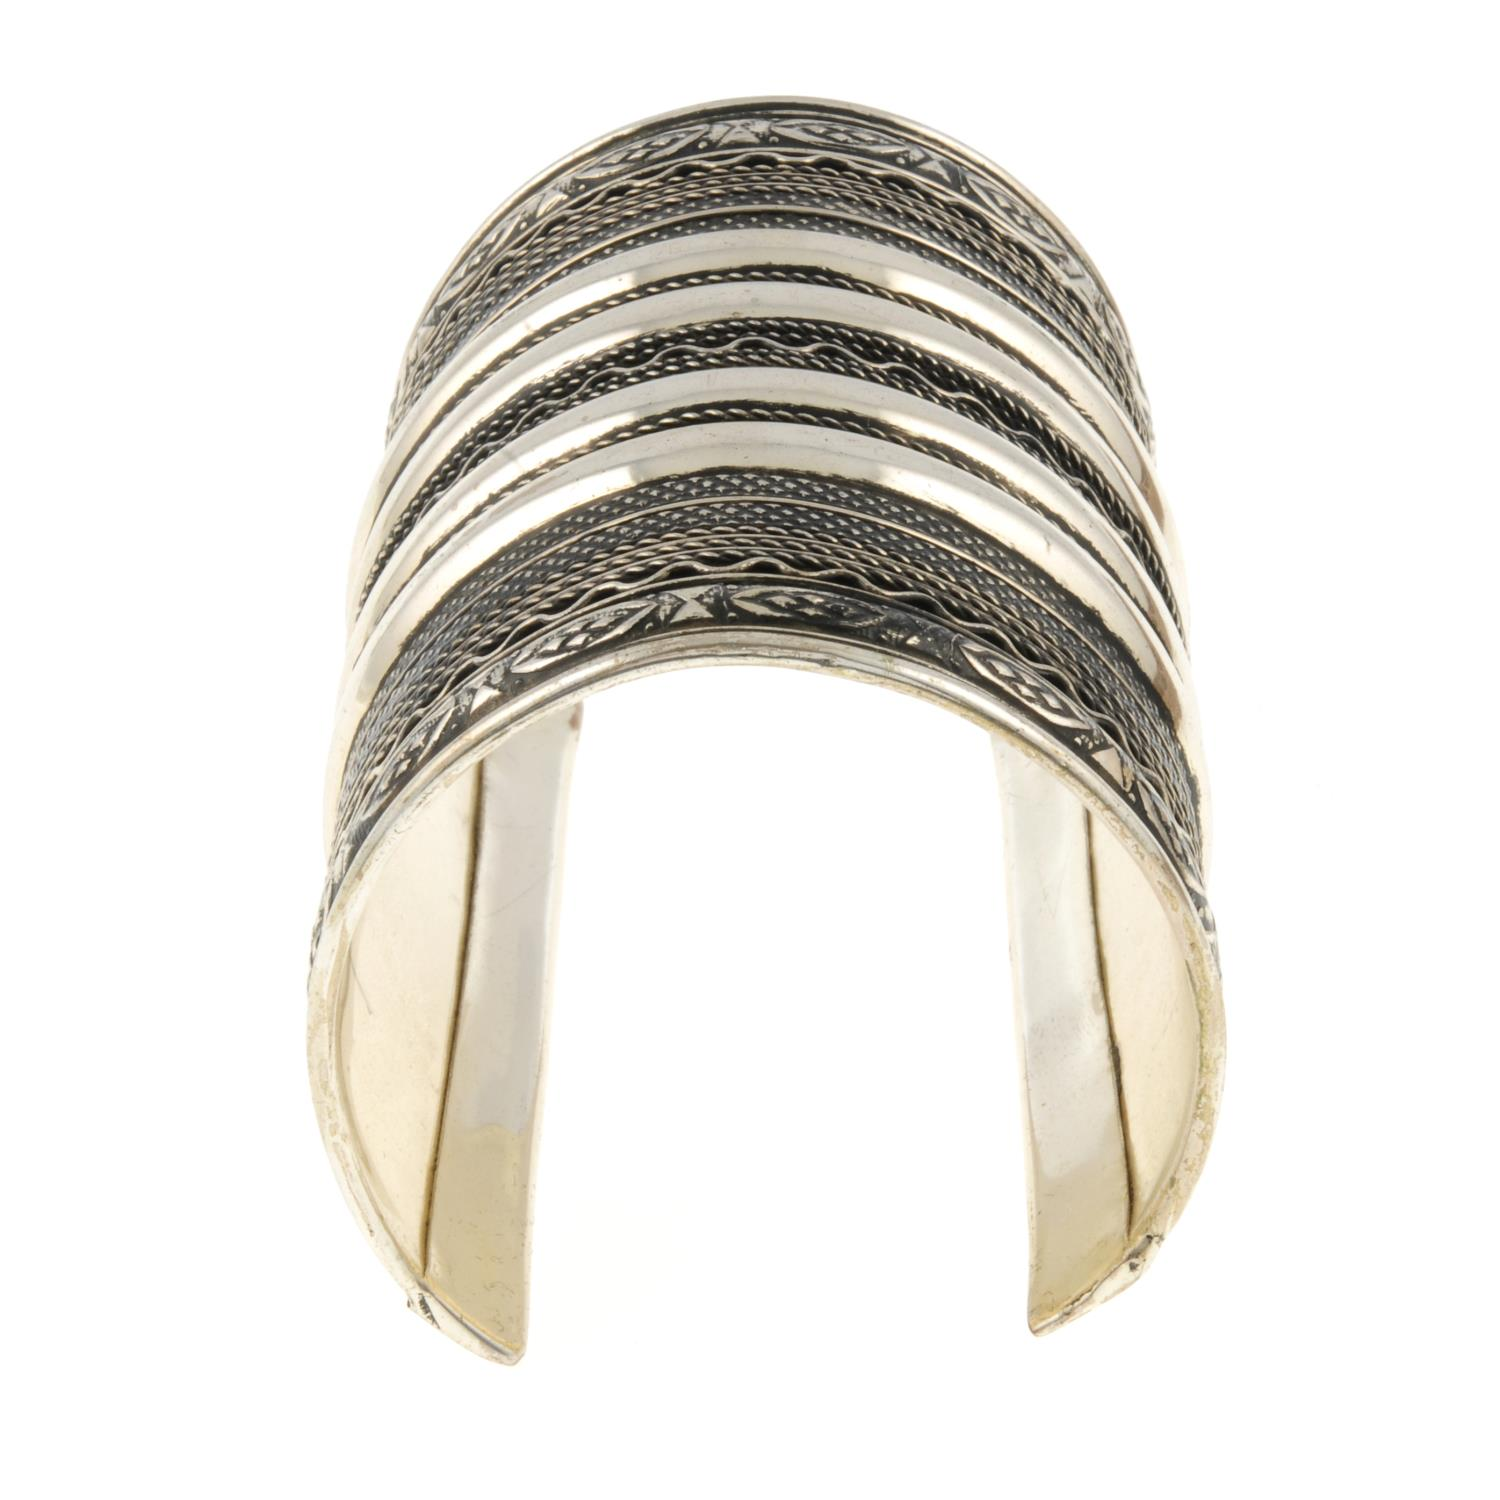 An elongated textured cuff bangle.Length 9.5cms. - Image 2 of 2